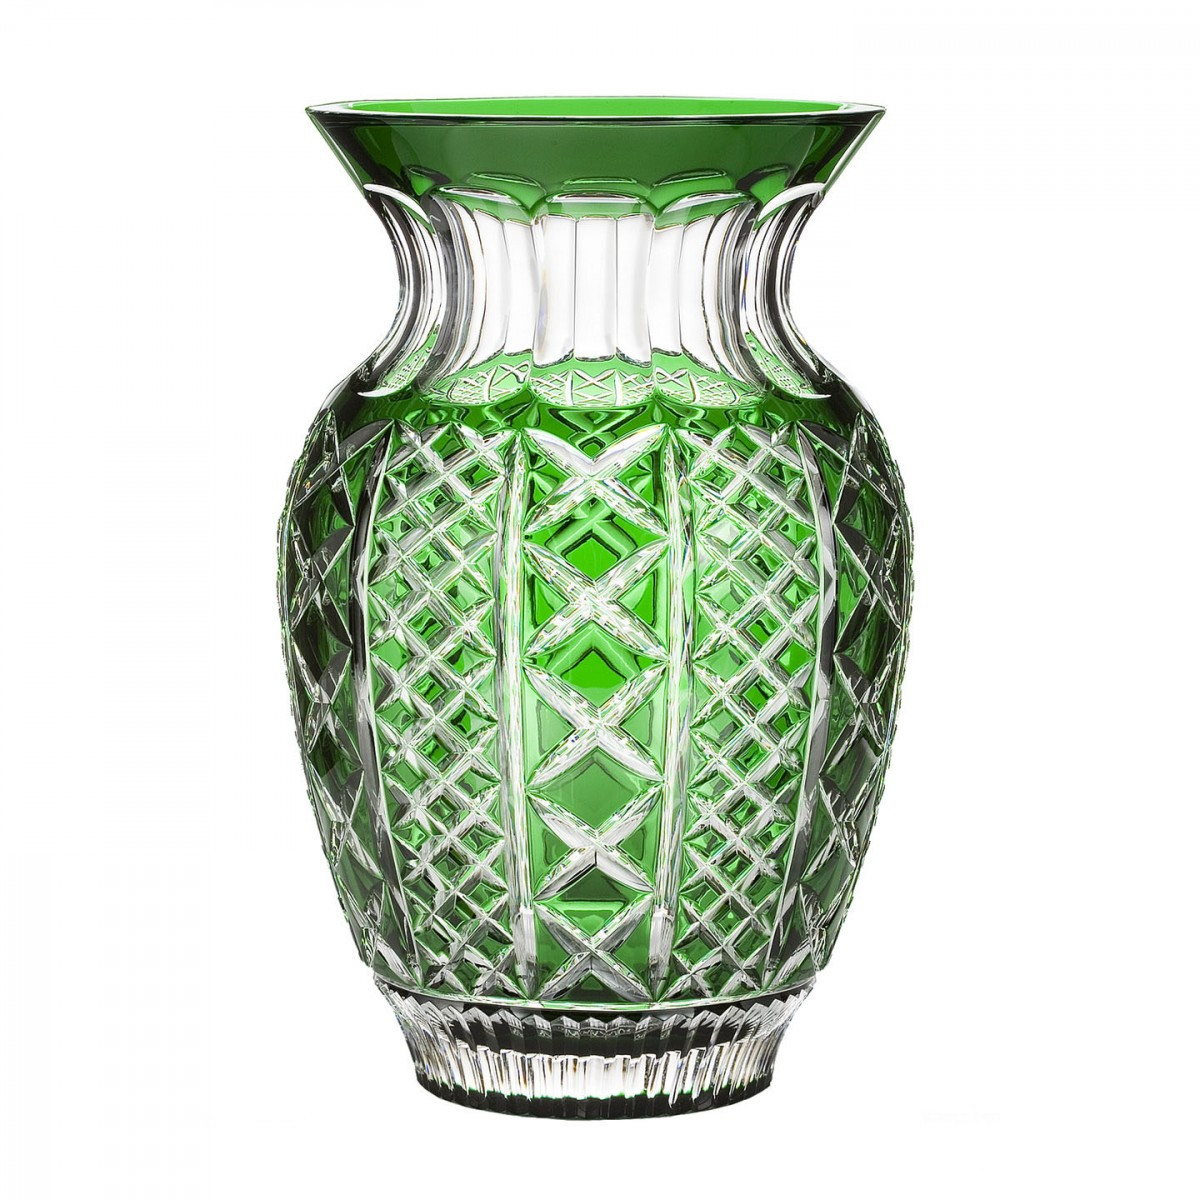 13 Lovable Waterford Marquis Markham Vase 2021 free download waterford marquis markham vase of fleurology molly emerald 12in bouquet vase discontinued for fleurology molly emerald 12in bouquet vase discontinued